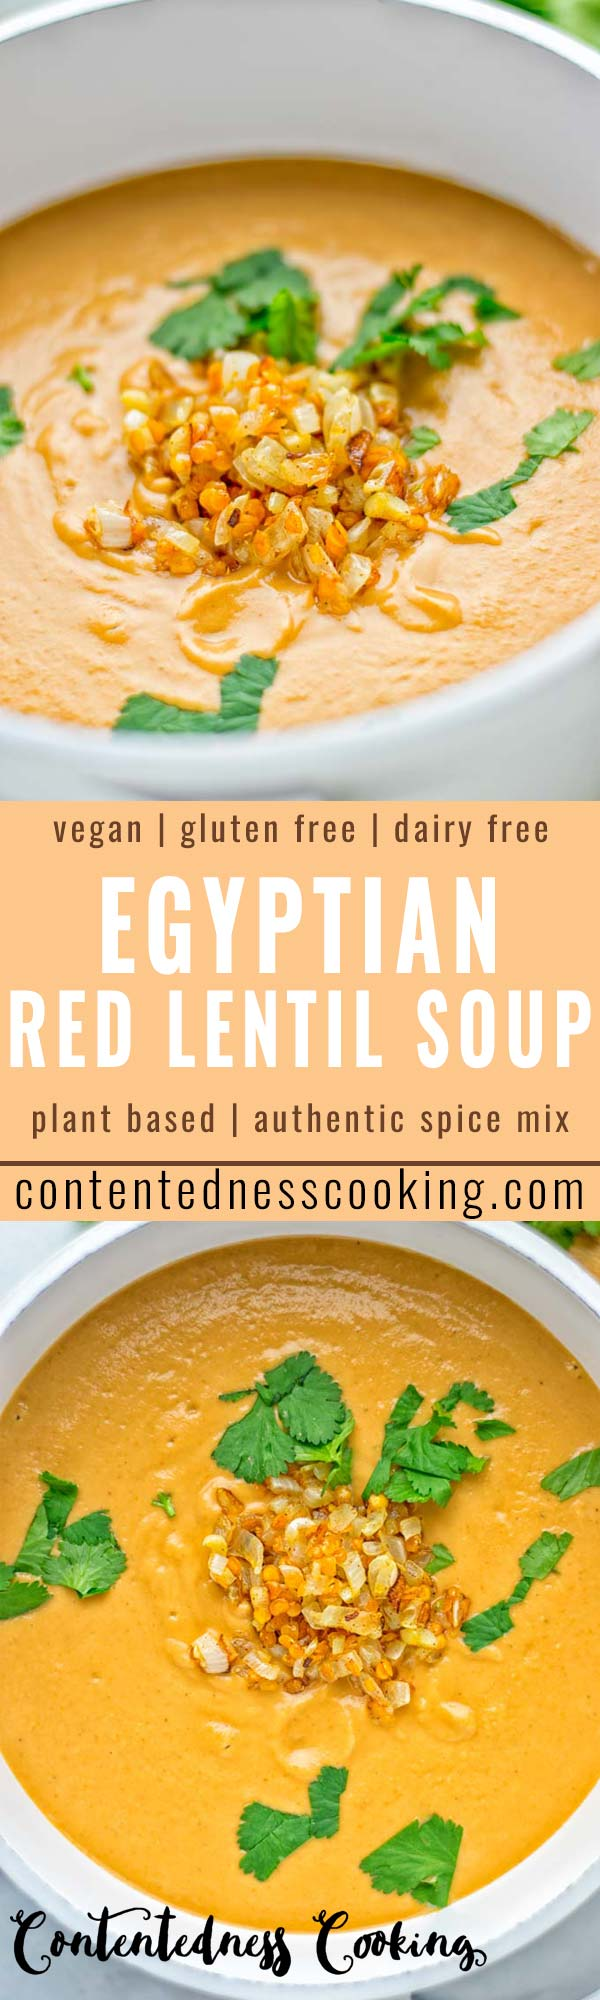 This Egyptian Red Lentil Soup is entirely vegan, gluten free, and so delicious. Packed with a delicious spice mix which take it to a whole new level. Try it now for dinner, lunch, meal preparation. You know what I'm talking about, yum! #vegan #glutenfree #dairyfree #vegetarian #lentils #dinner #lunch #mealprep #worklunchideas #redlentils #redlentilsoup #contentednesscooking #soup